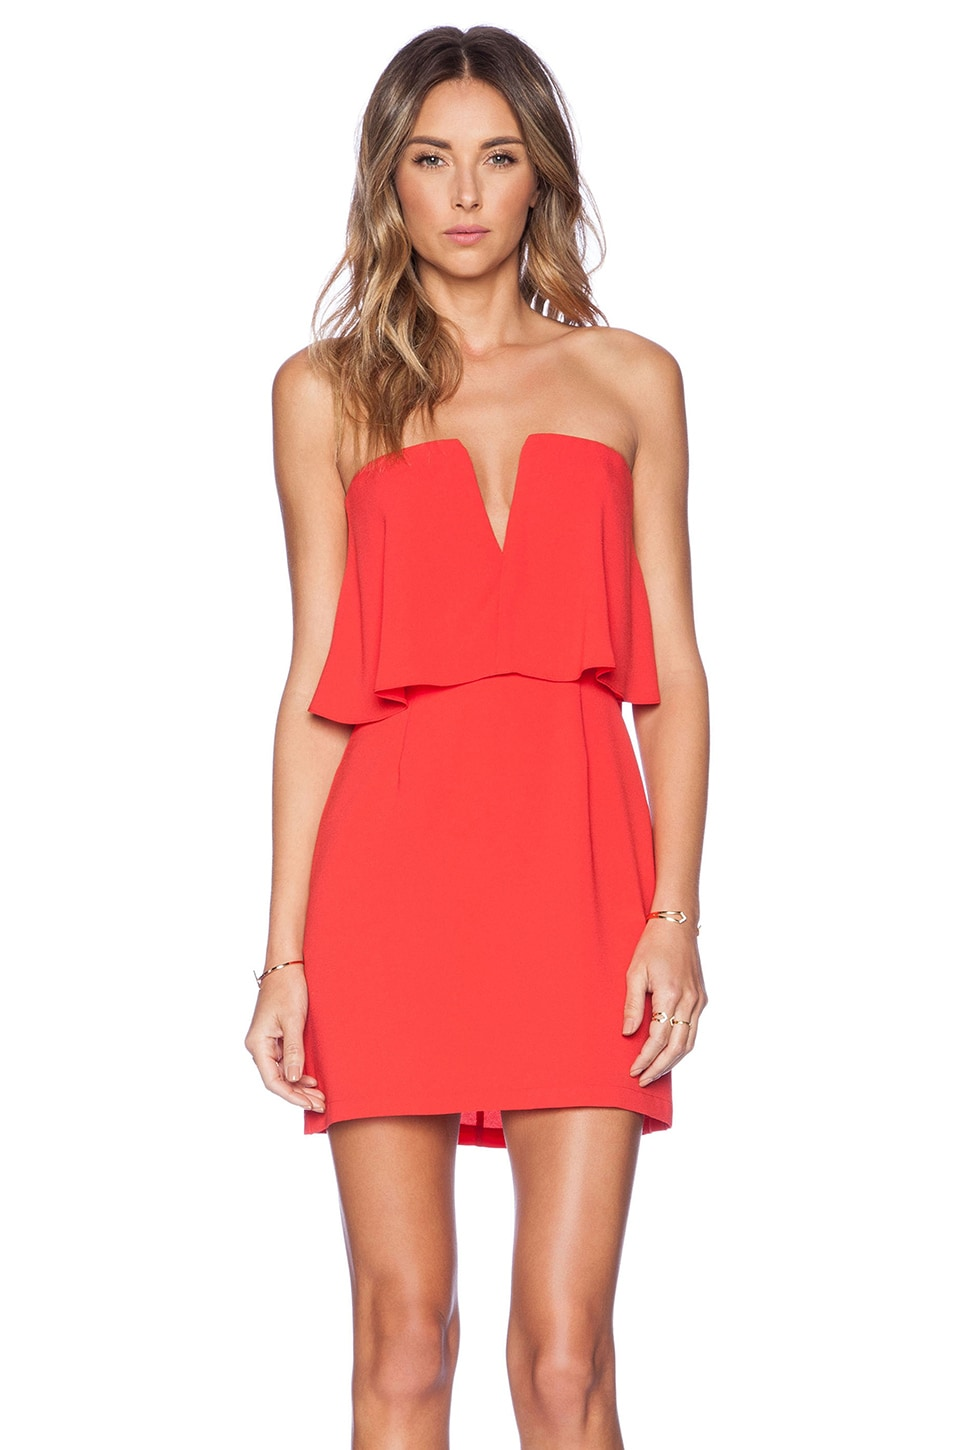 BCBGMAXAZRIA Kate Dress in Red Berry | REVOLVE